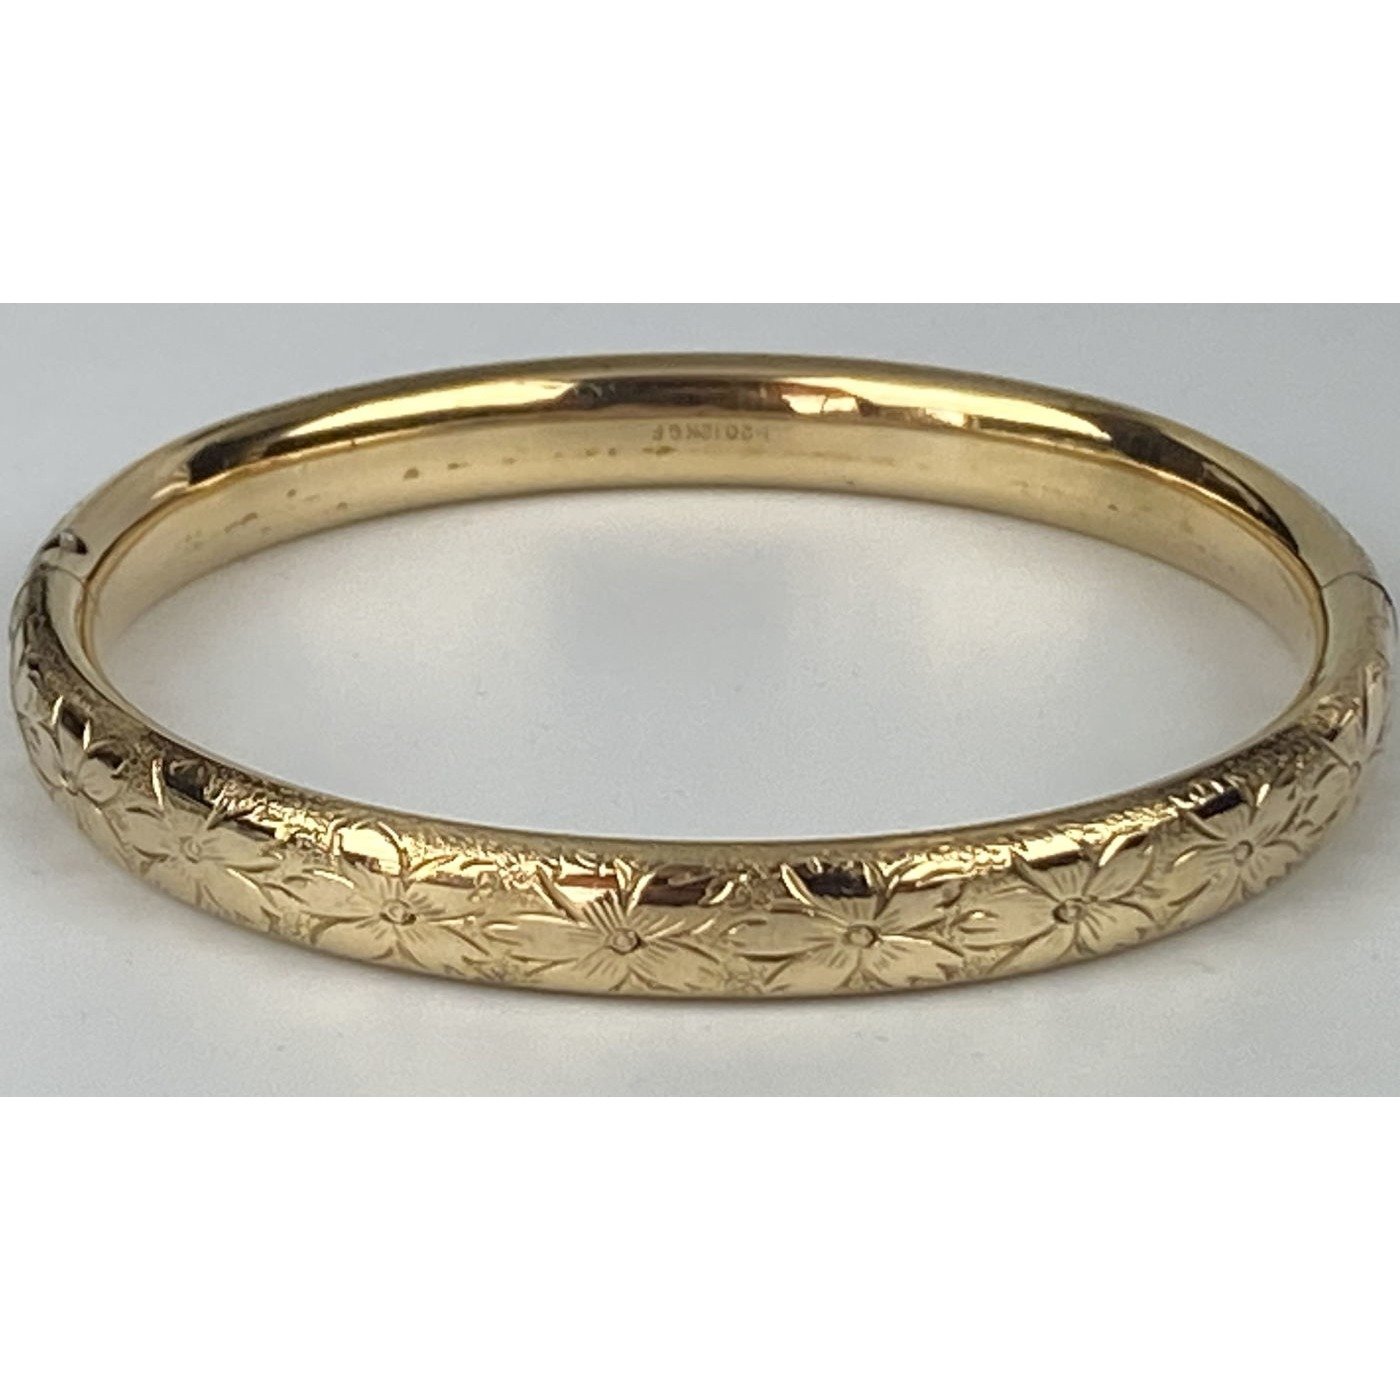 Super Sweet Smaller-Than-Average All Around Engagement Bangle